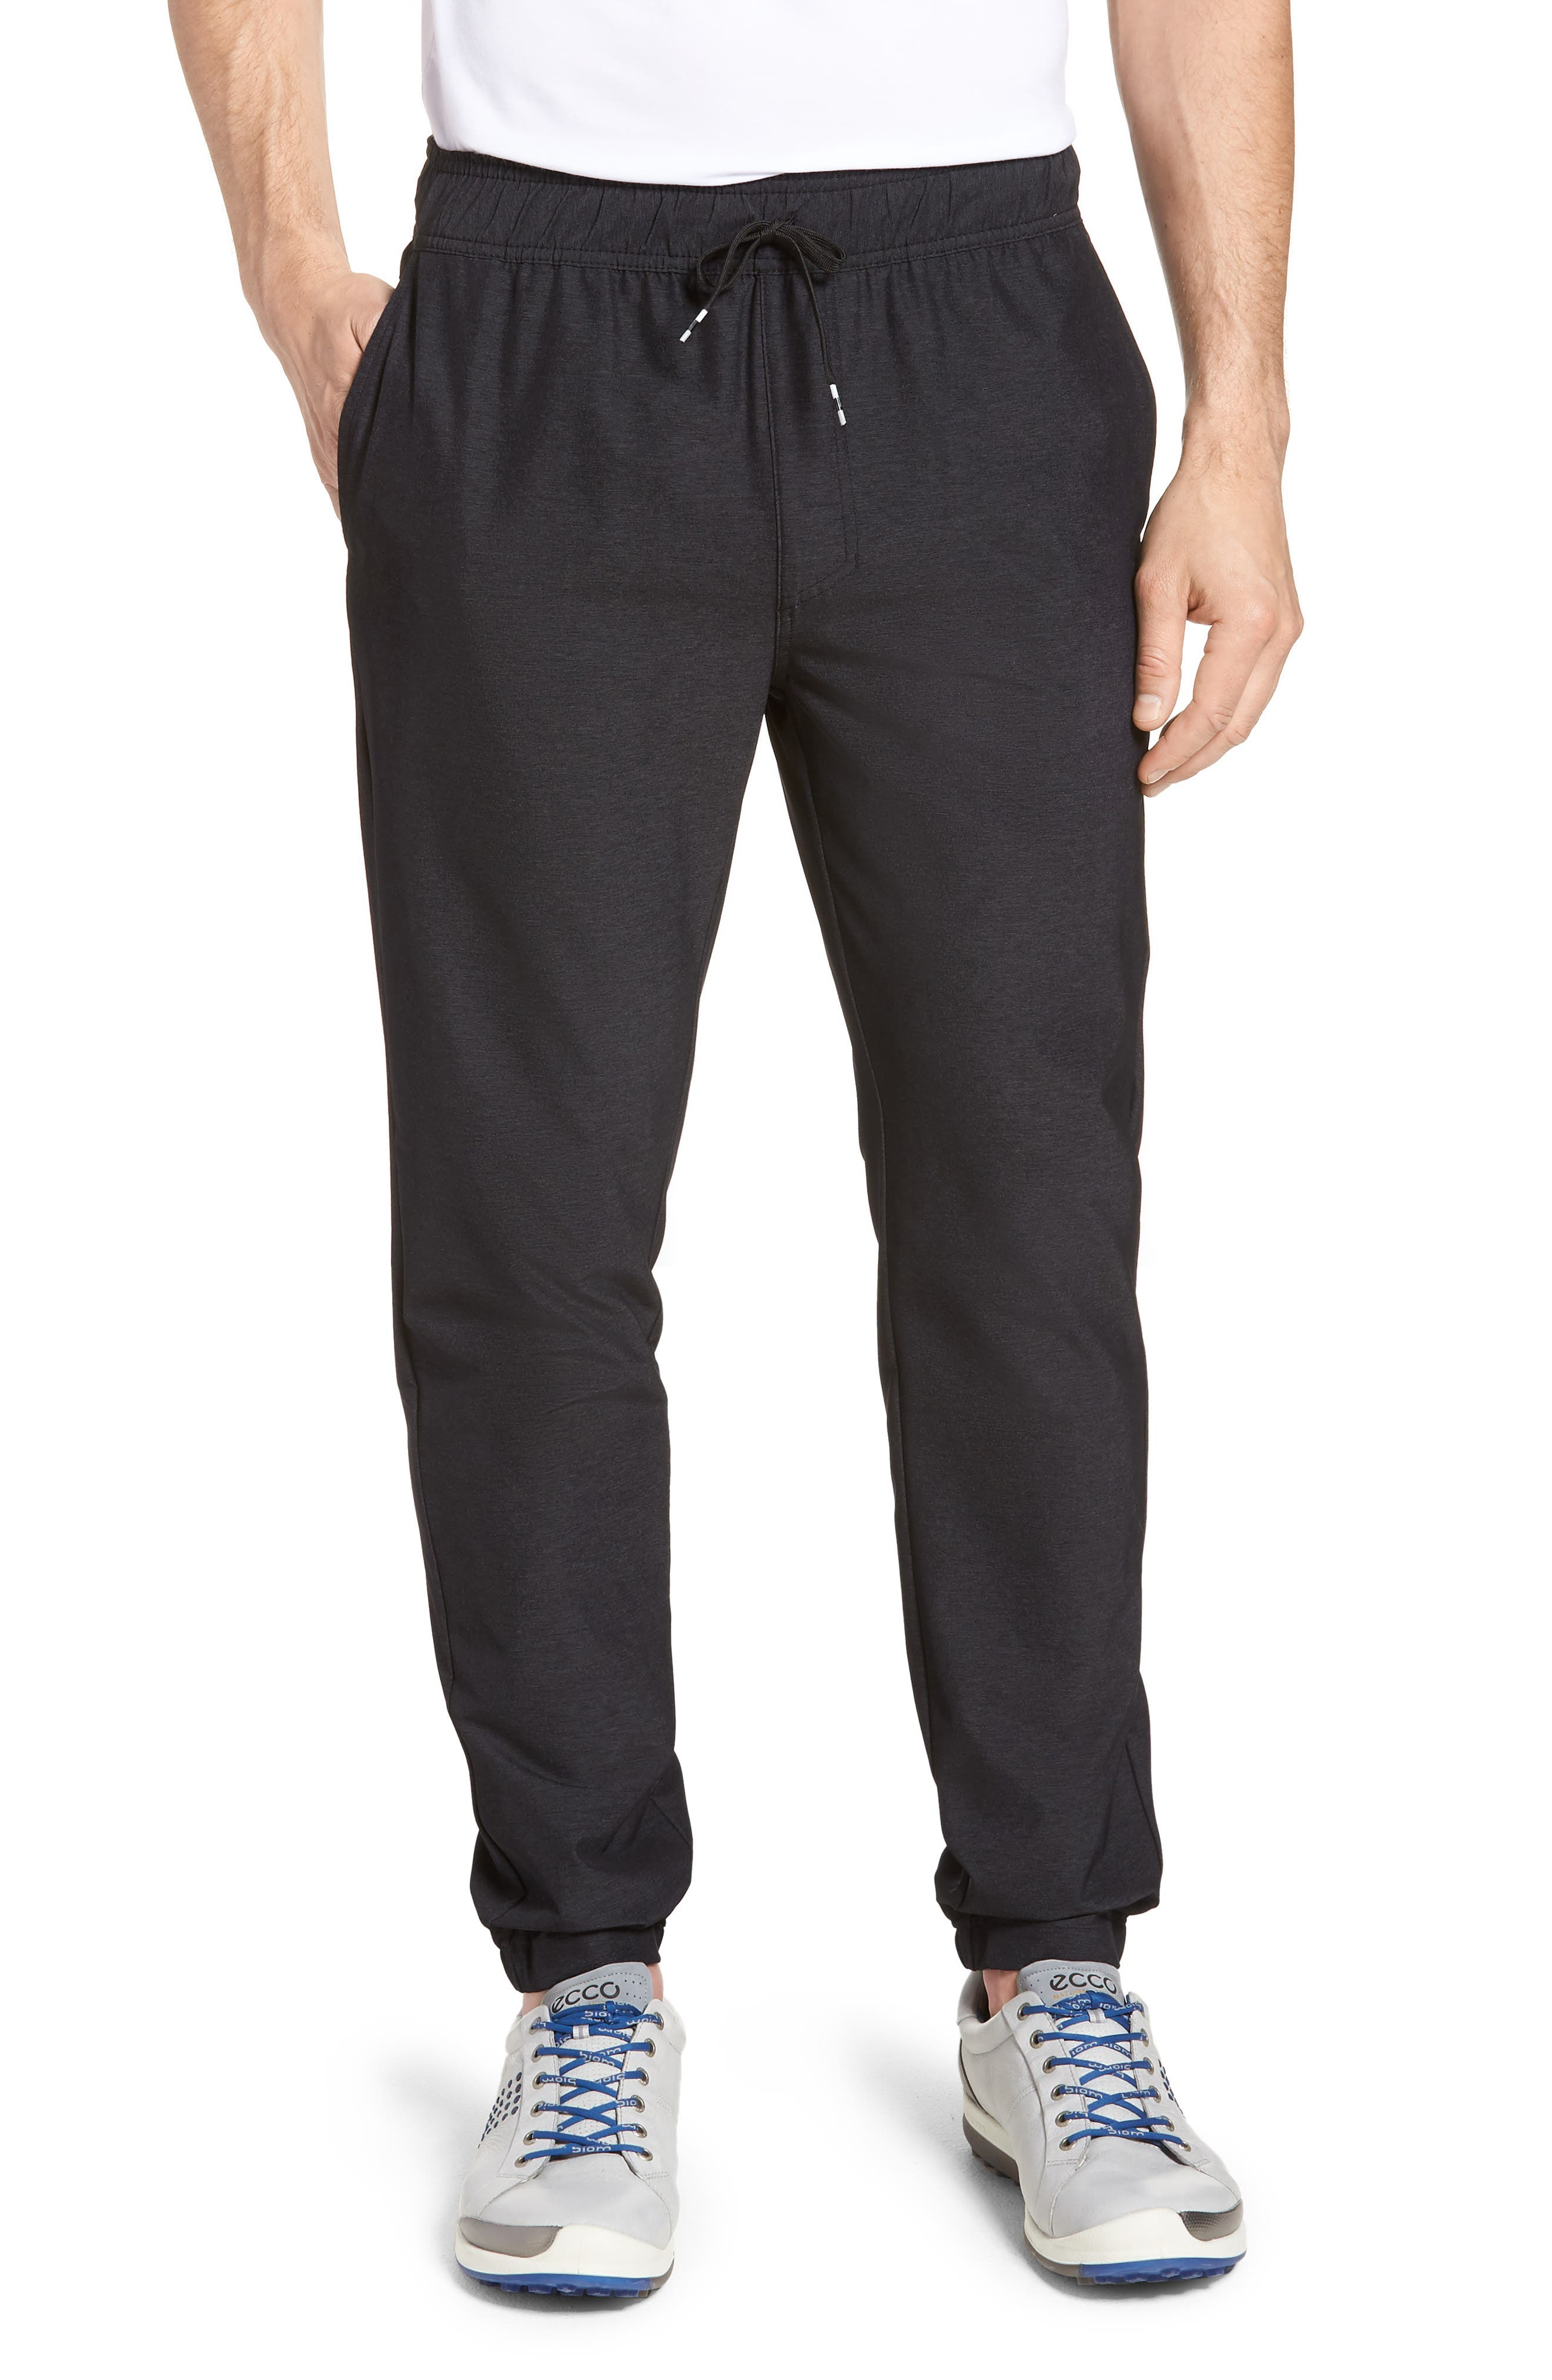 Relay Lounge Pants,                         Main,                         color, Heather Black